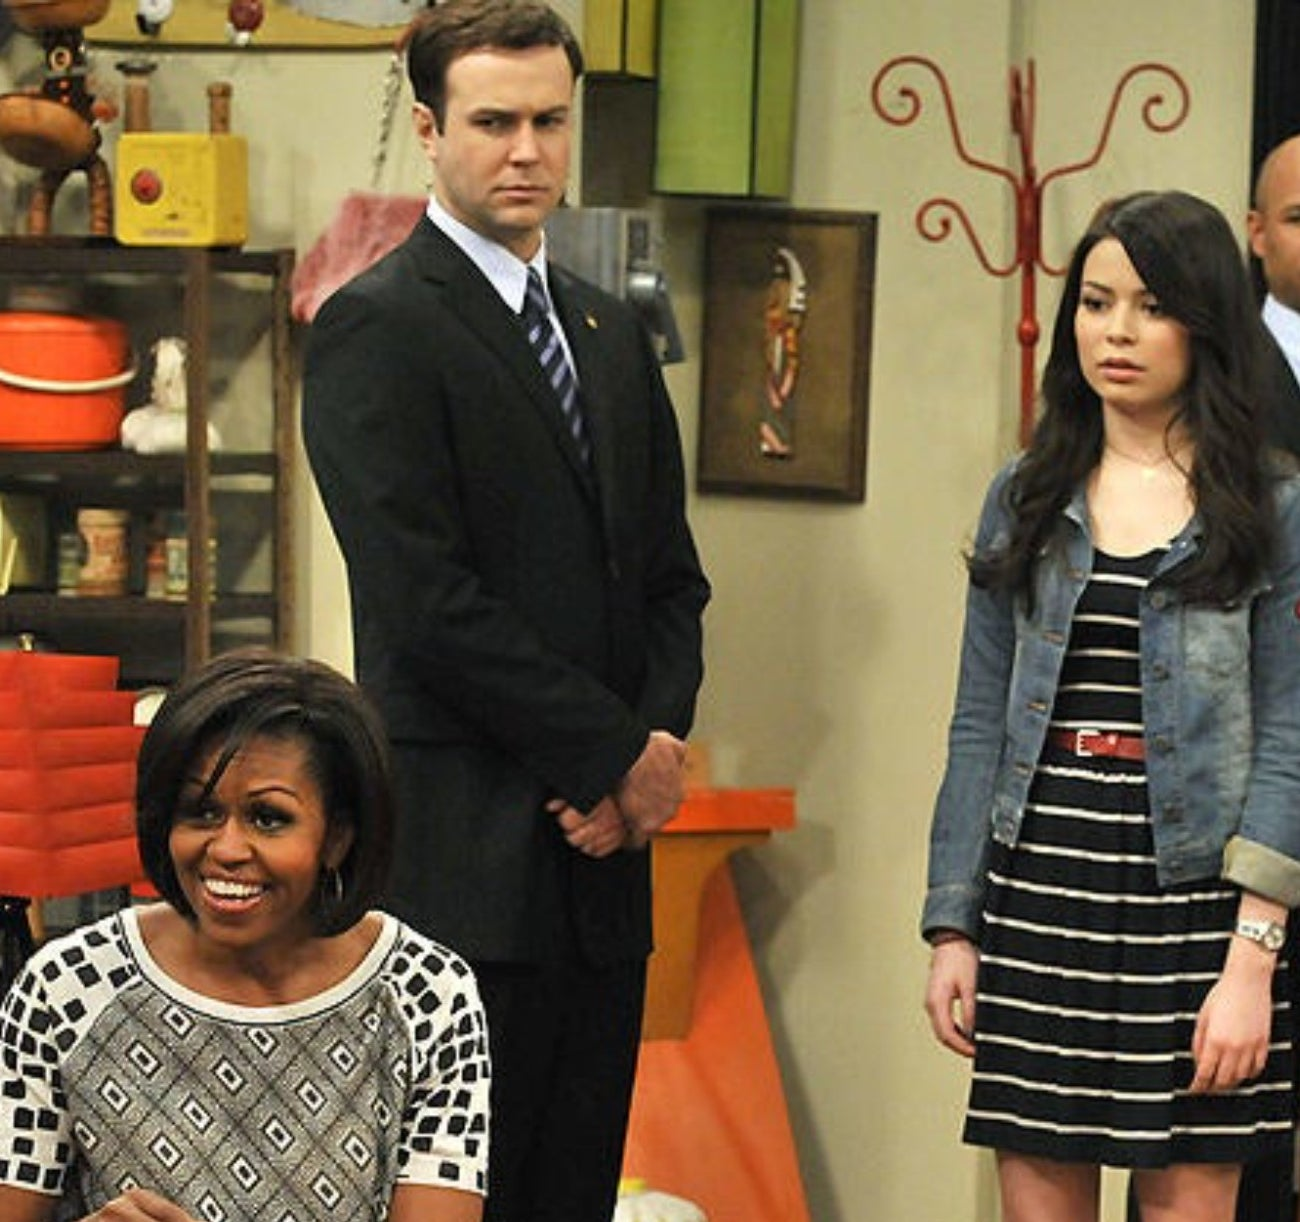 Next to Carly, Taram Killam looks serious next as one of Michelle Obama's Secret Service agents